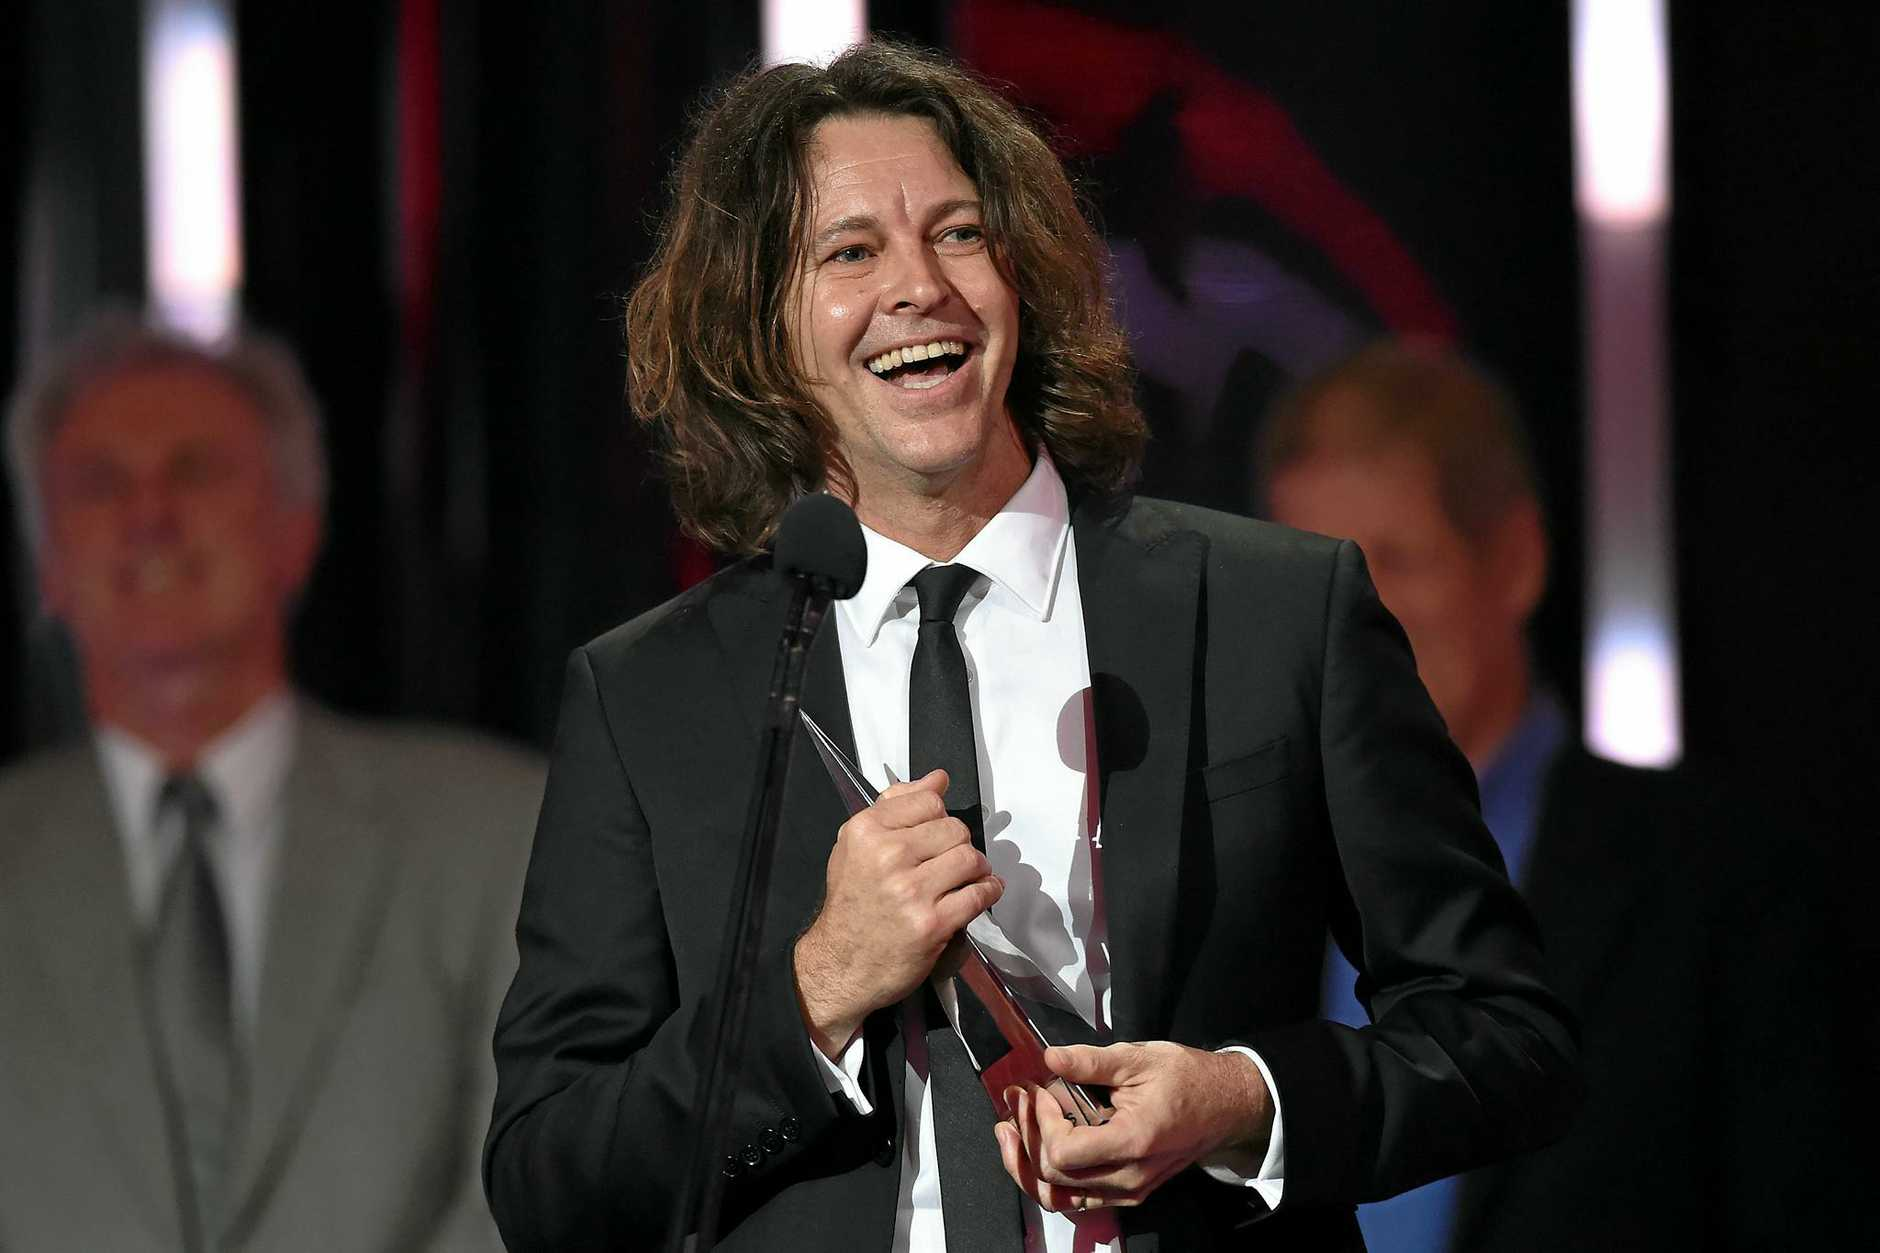 Bernard Fanning accepts the ARIA for Best Adult Contemporary Album during the 30th ARIA Awards, at The Star, in Sydney, Wednesday, Nov. 23, 2016. (AAP Image/Paul Miller) NO ARCHIVING